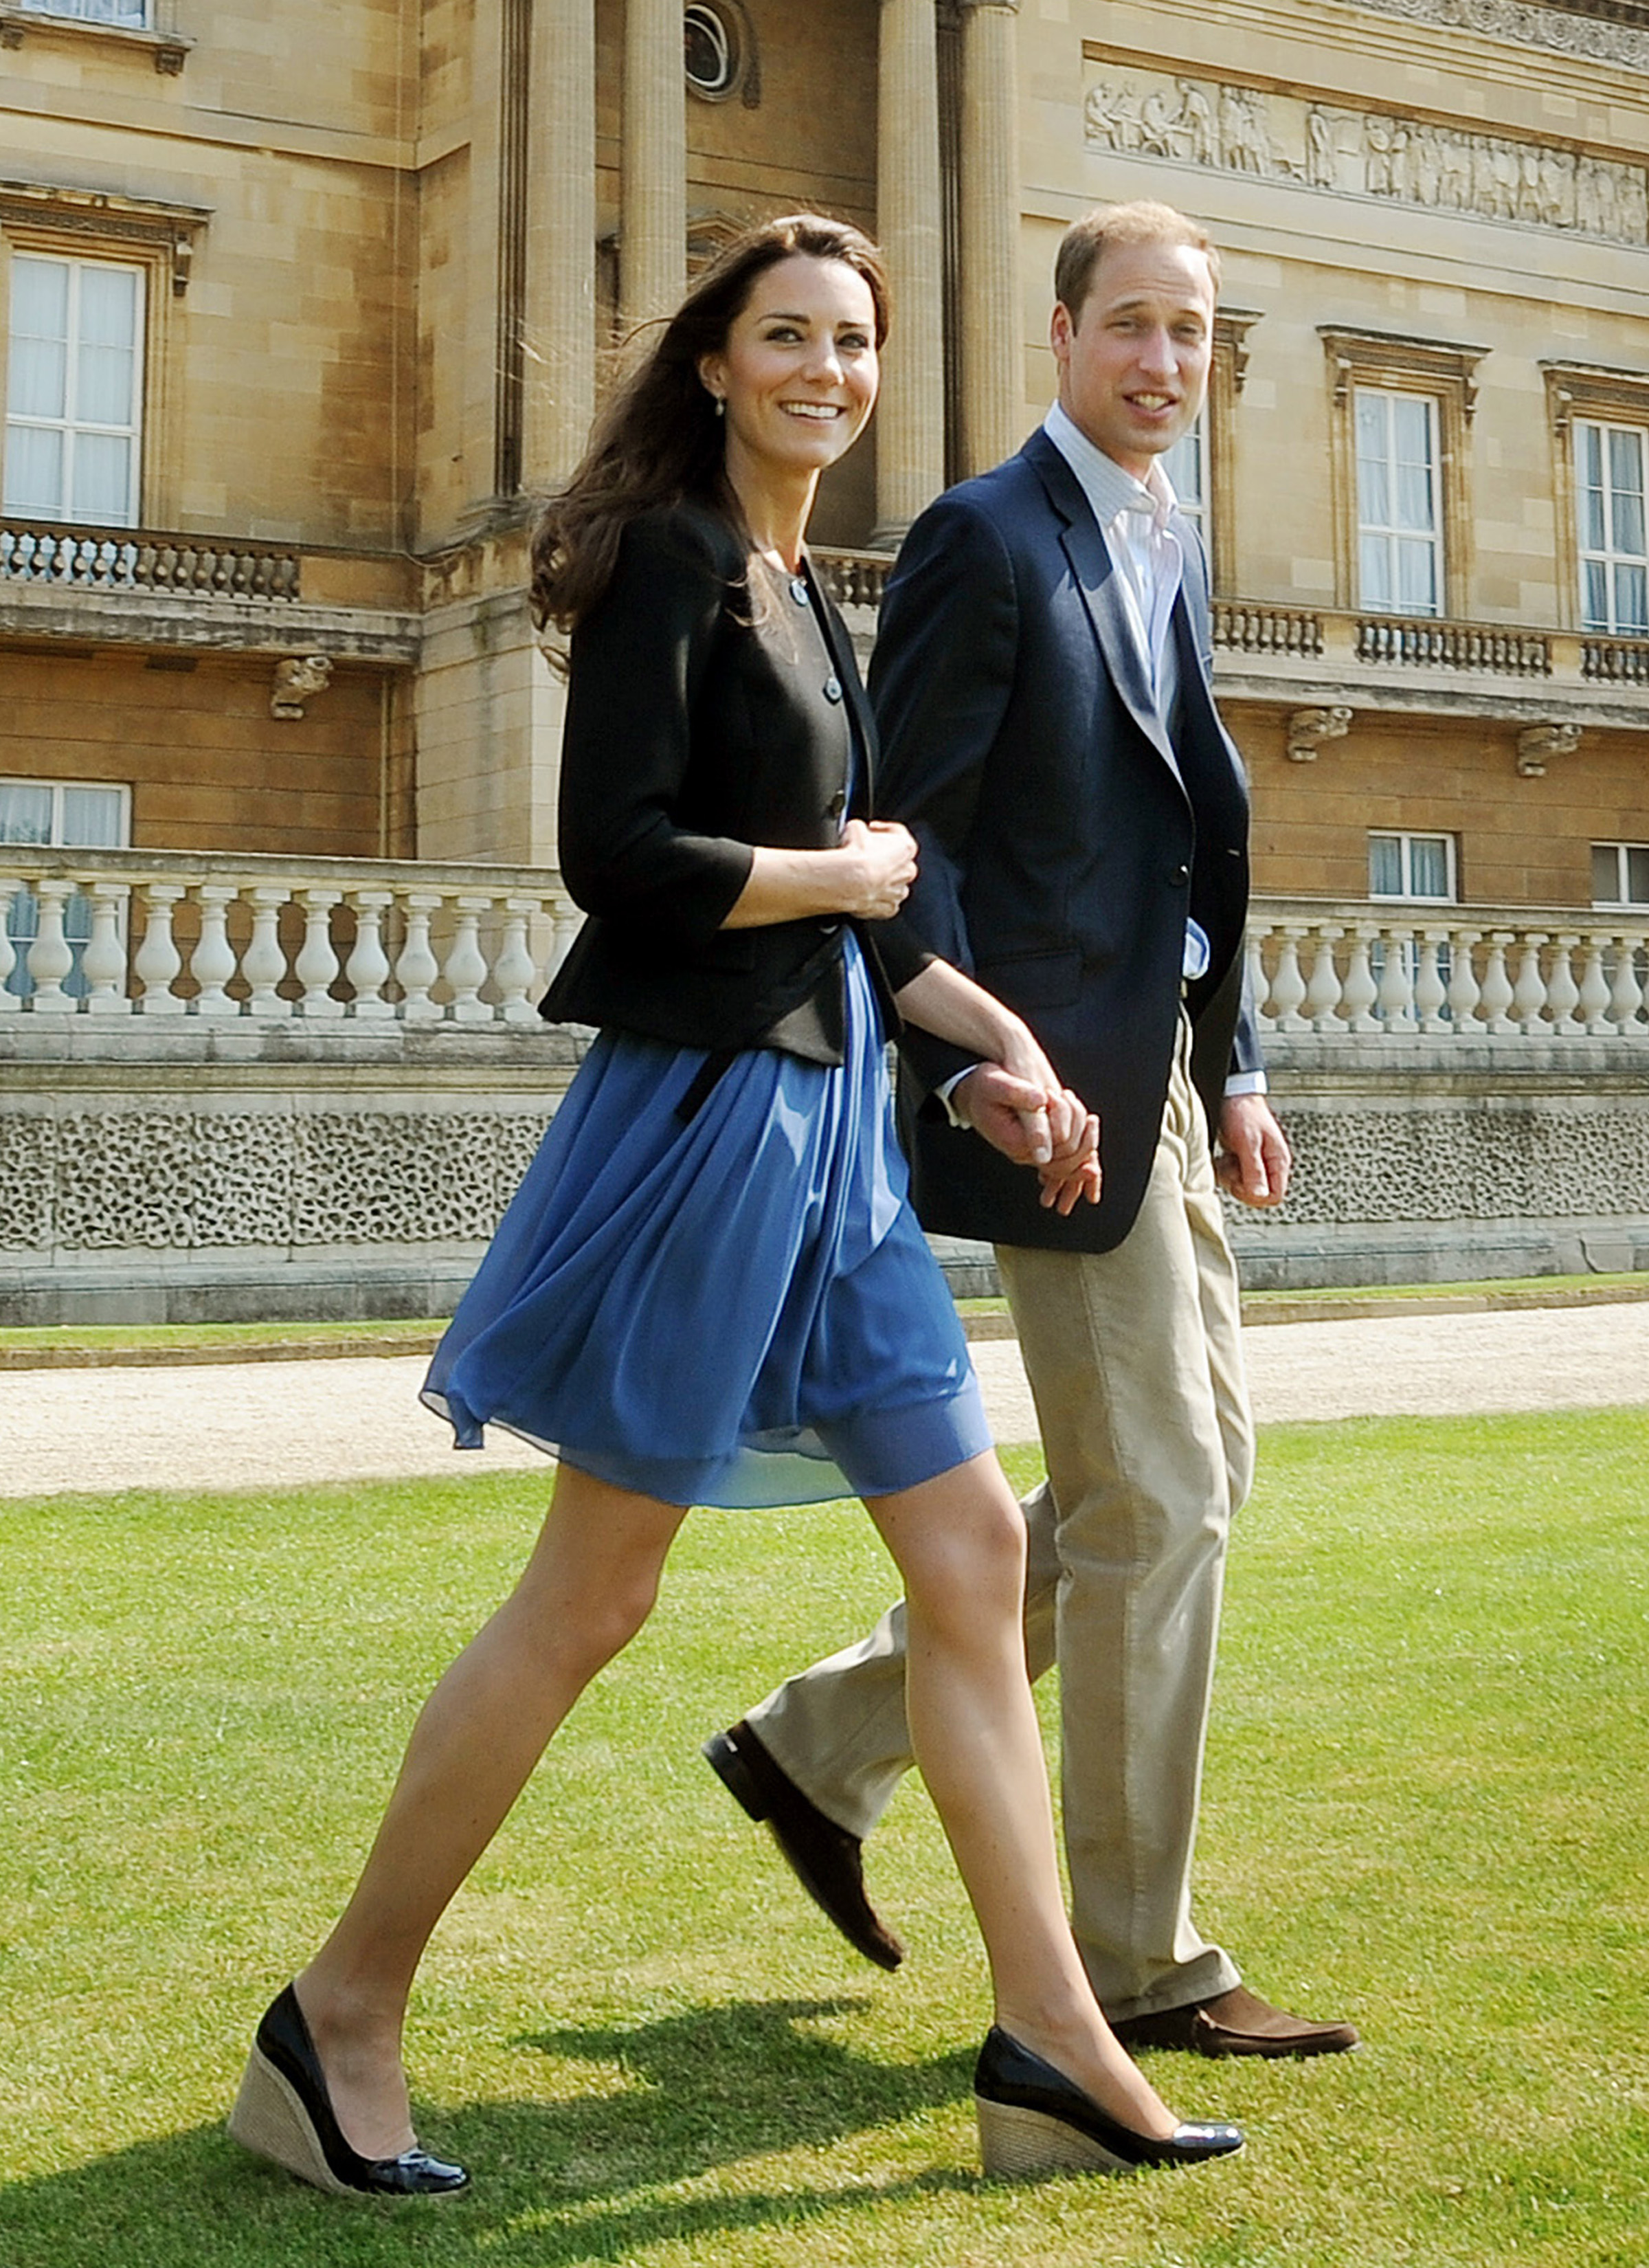 Kate's style: Little blue dress